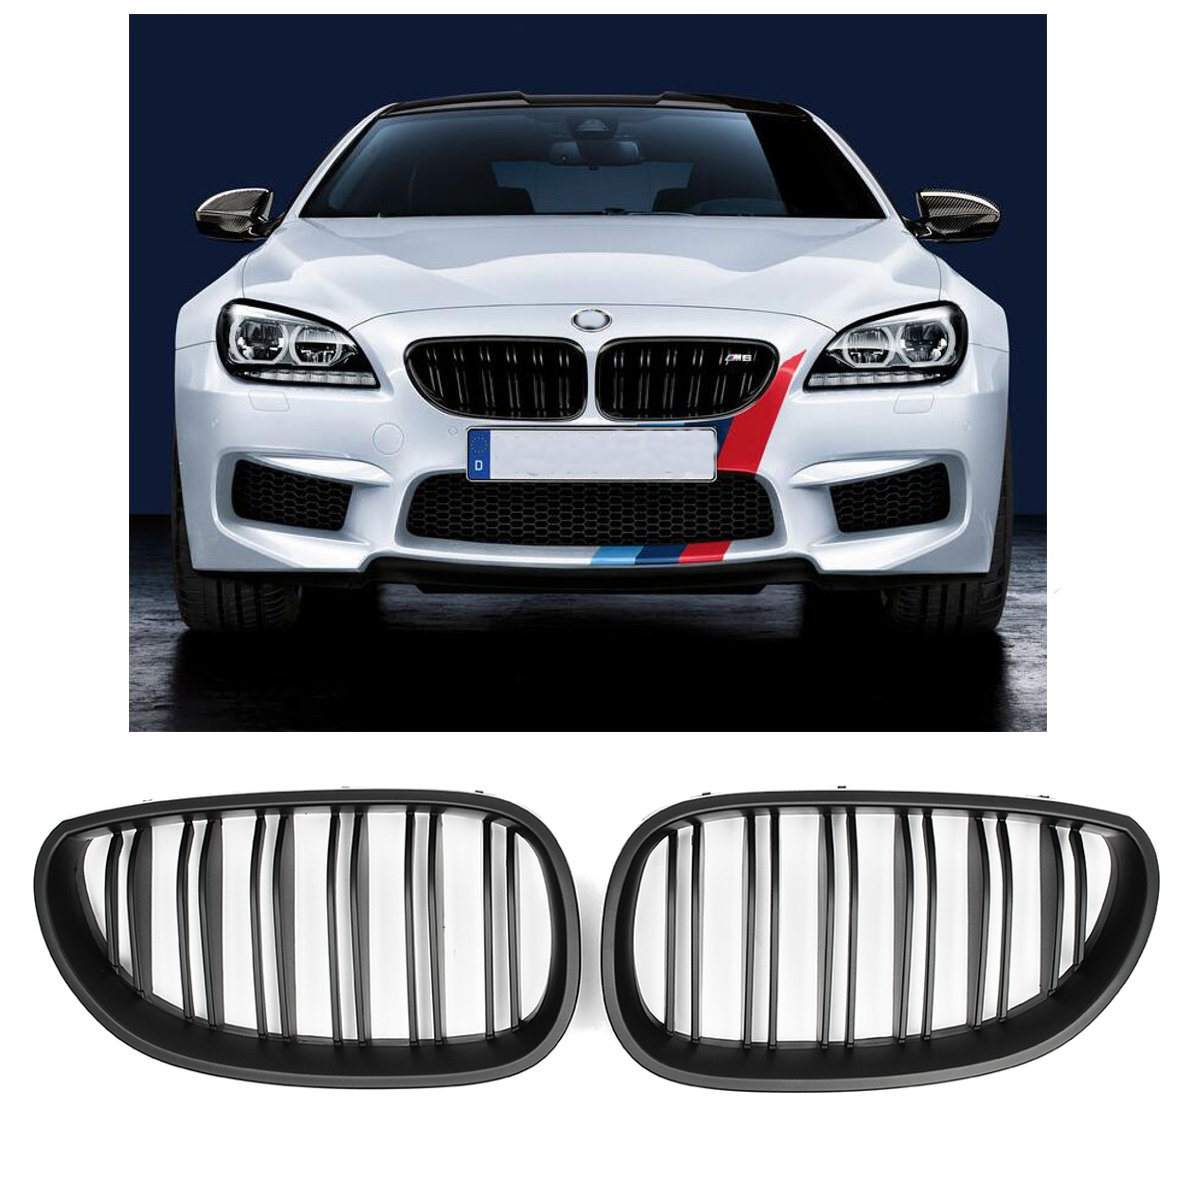 Pair New Matte Black Front Grill Grille Kidney For BMW E60 E61 5 Series M5 2003 2004 2005 2006 2007 2008 2009 Car Accessories e60 abs front kidney grille grill for bmw 5 series e60 2004 2009 sedan e61 hatchback 1 slat 2 slat 535i 545i